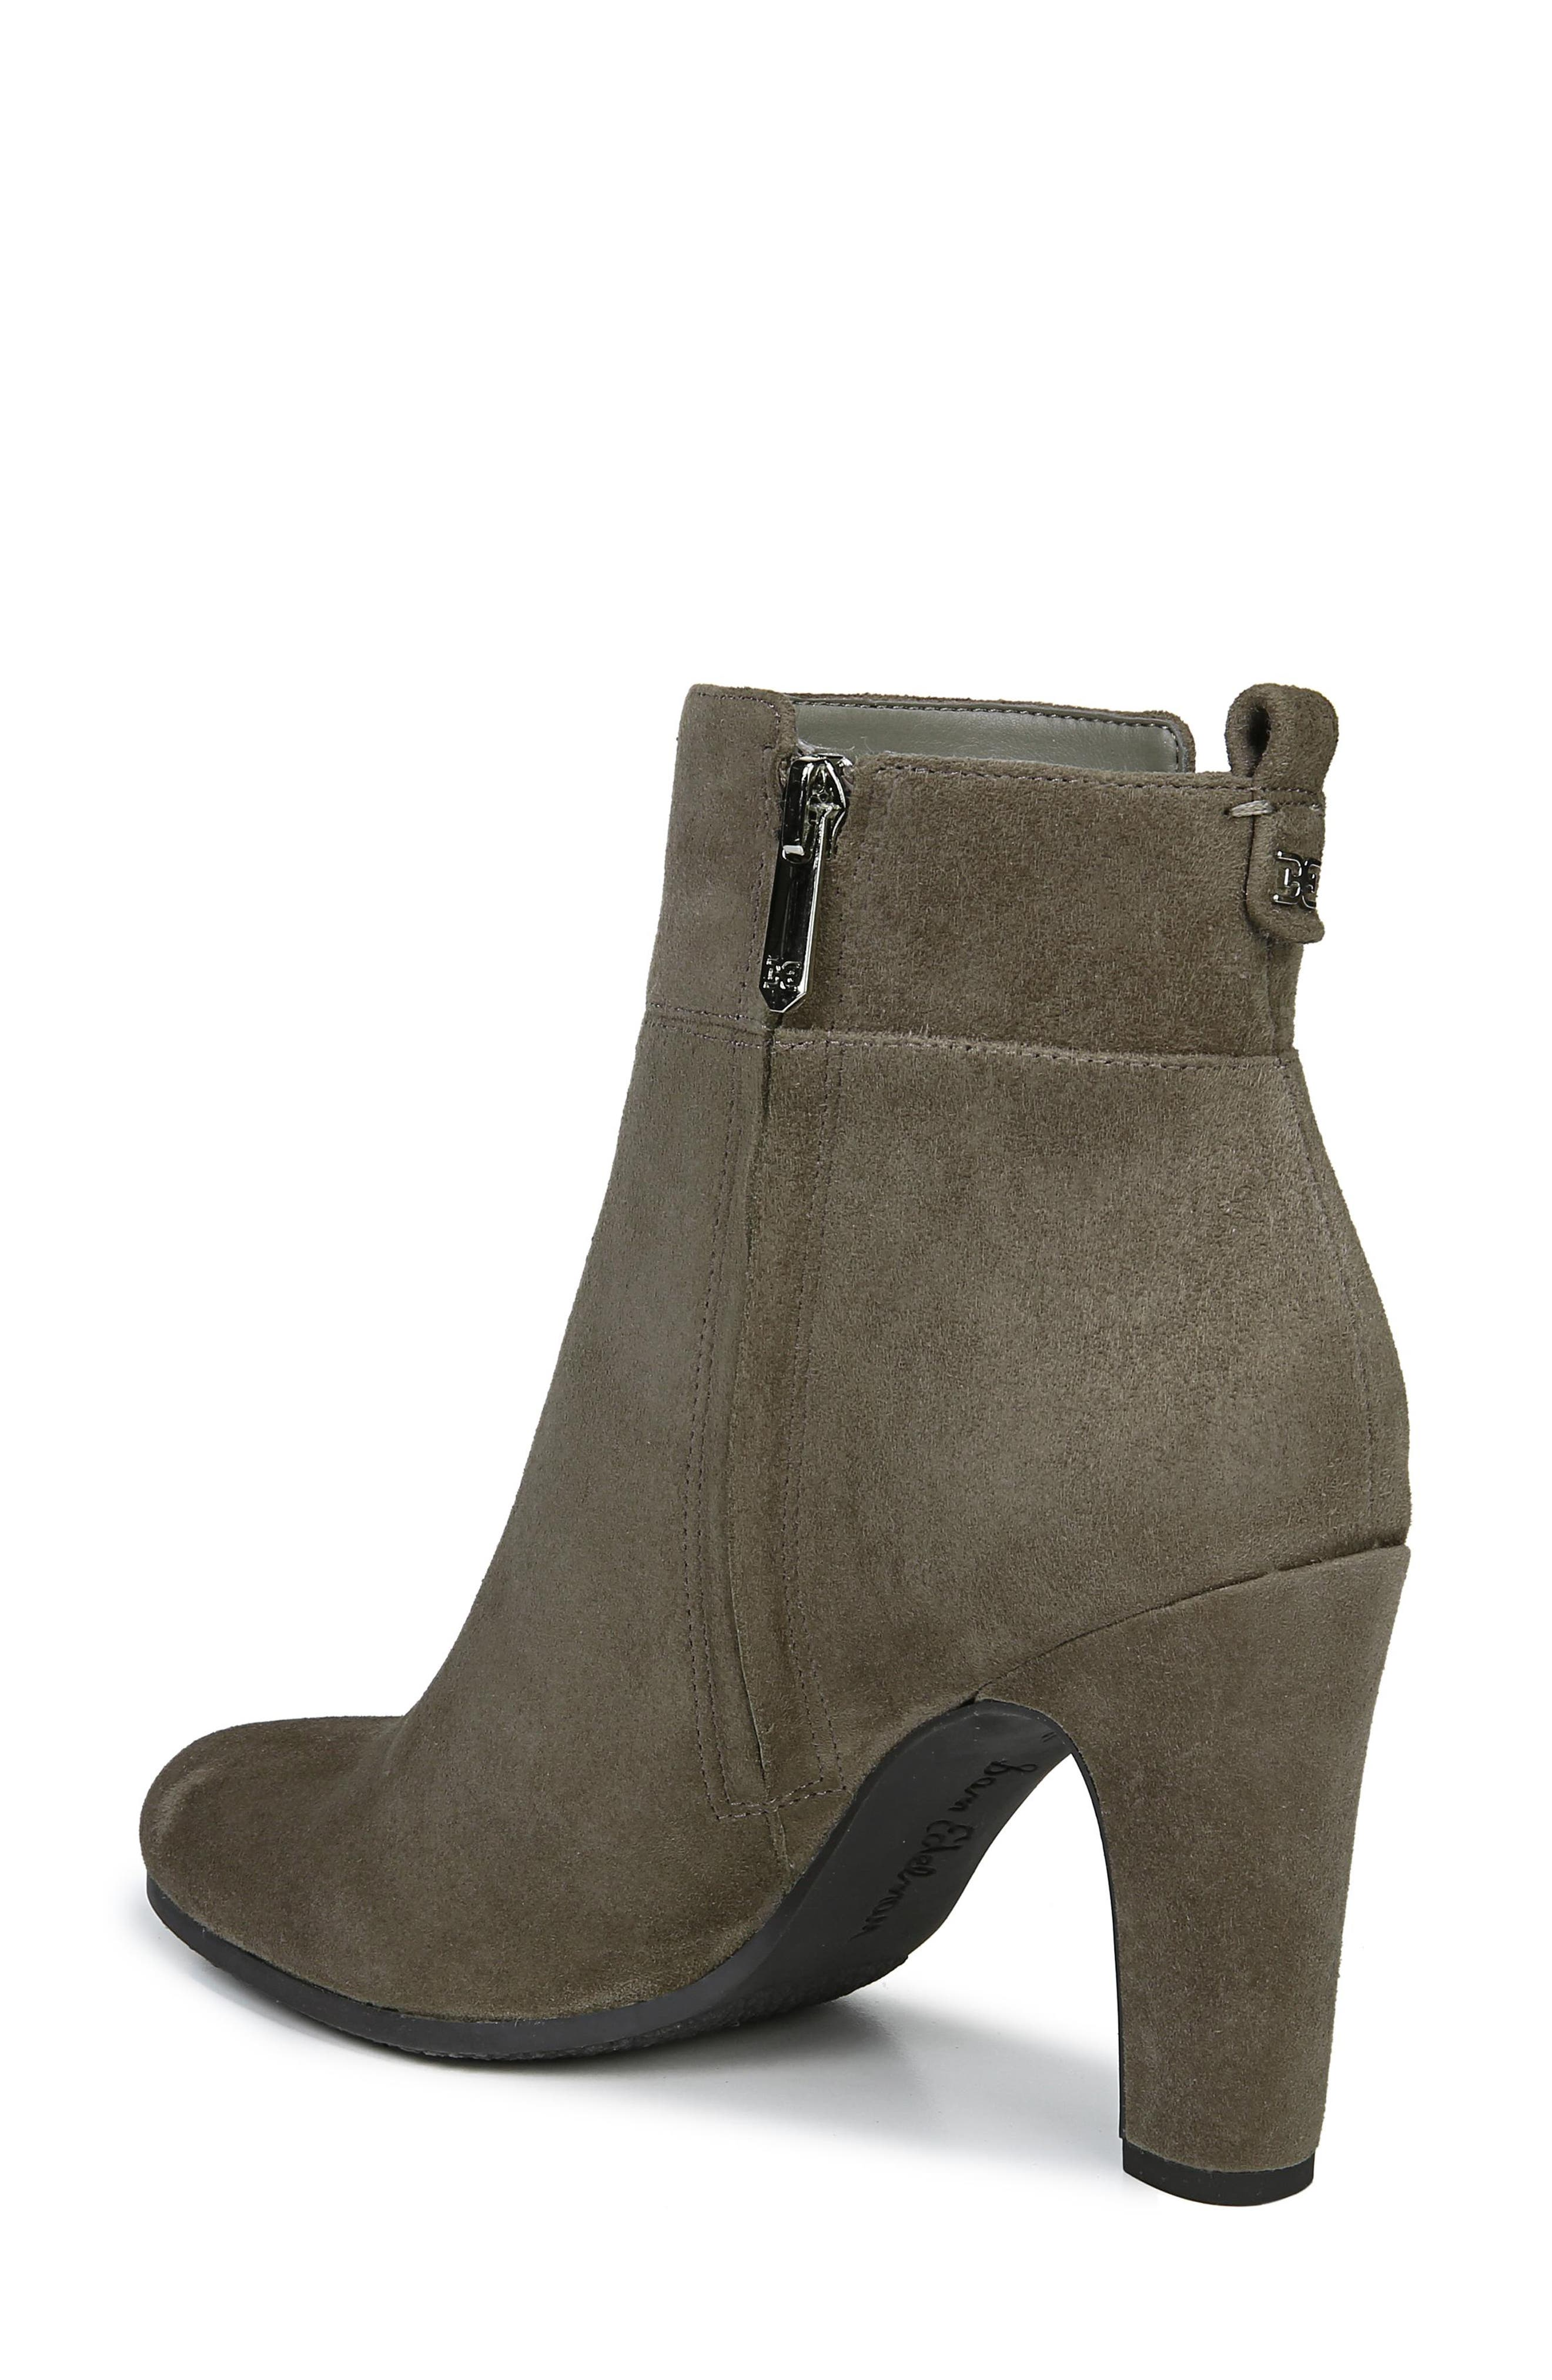 Sianna Bootie,                             Alternate thumbnail 2, color,                             FLINT GREY SUEDE